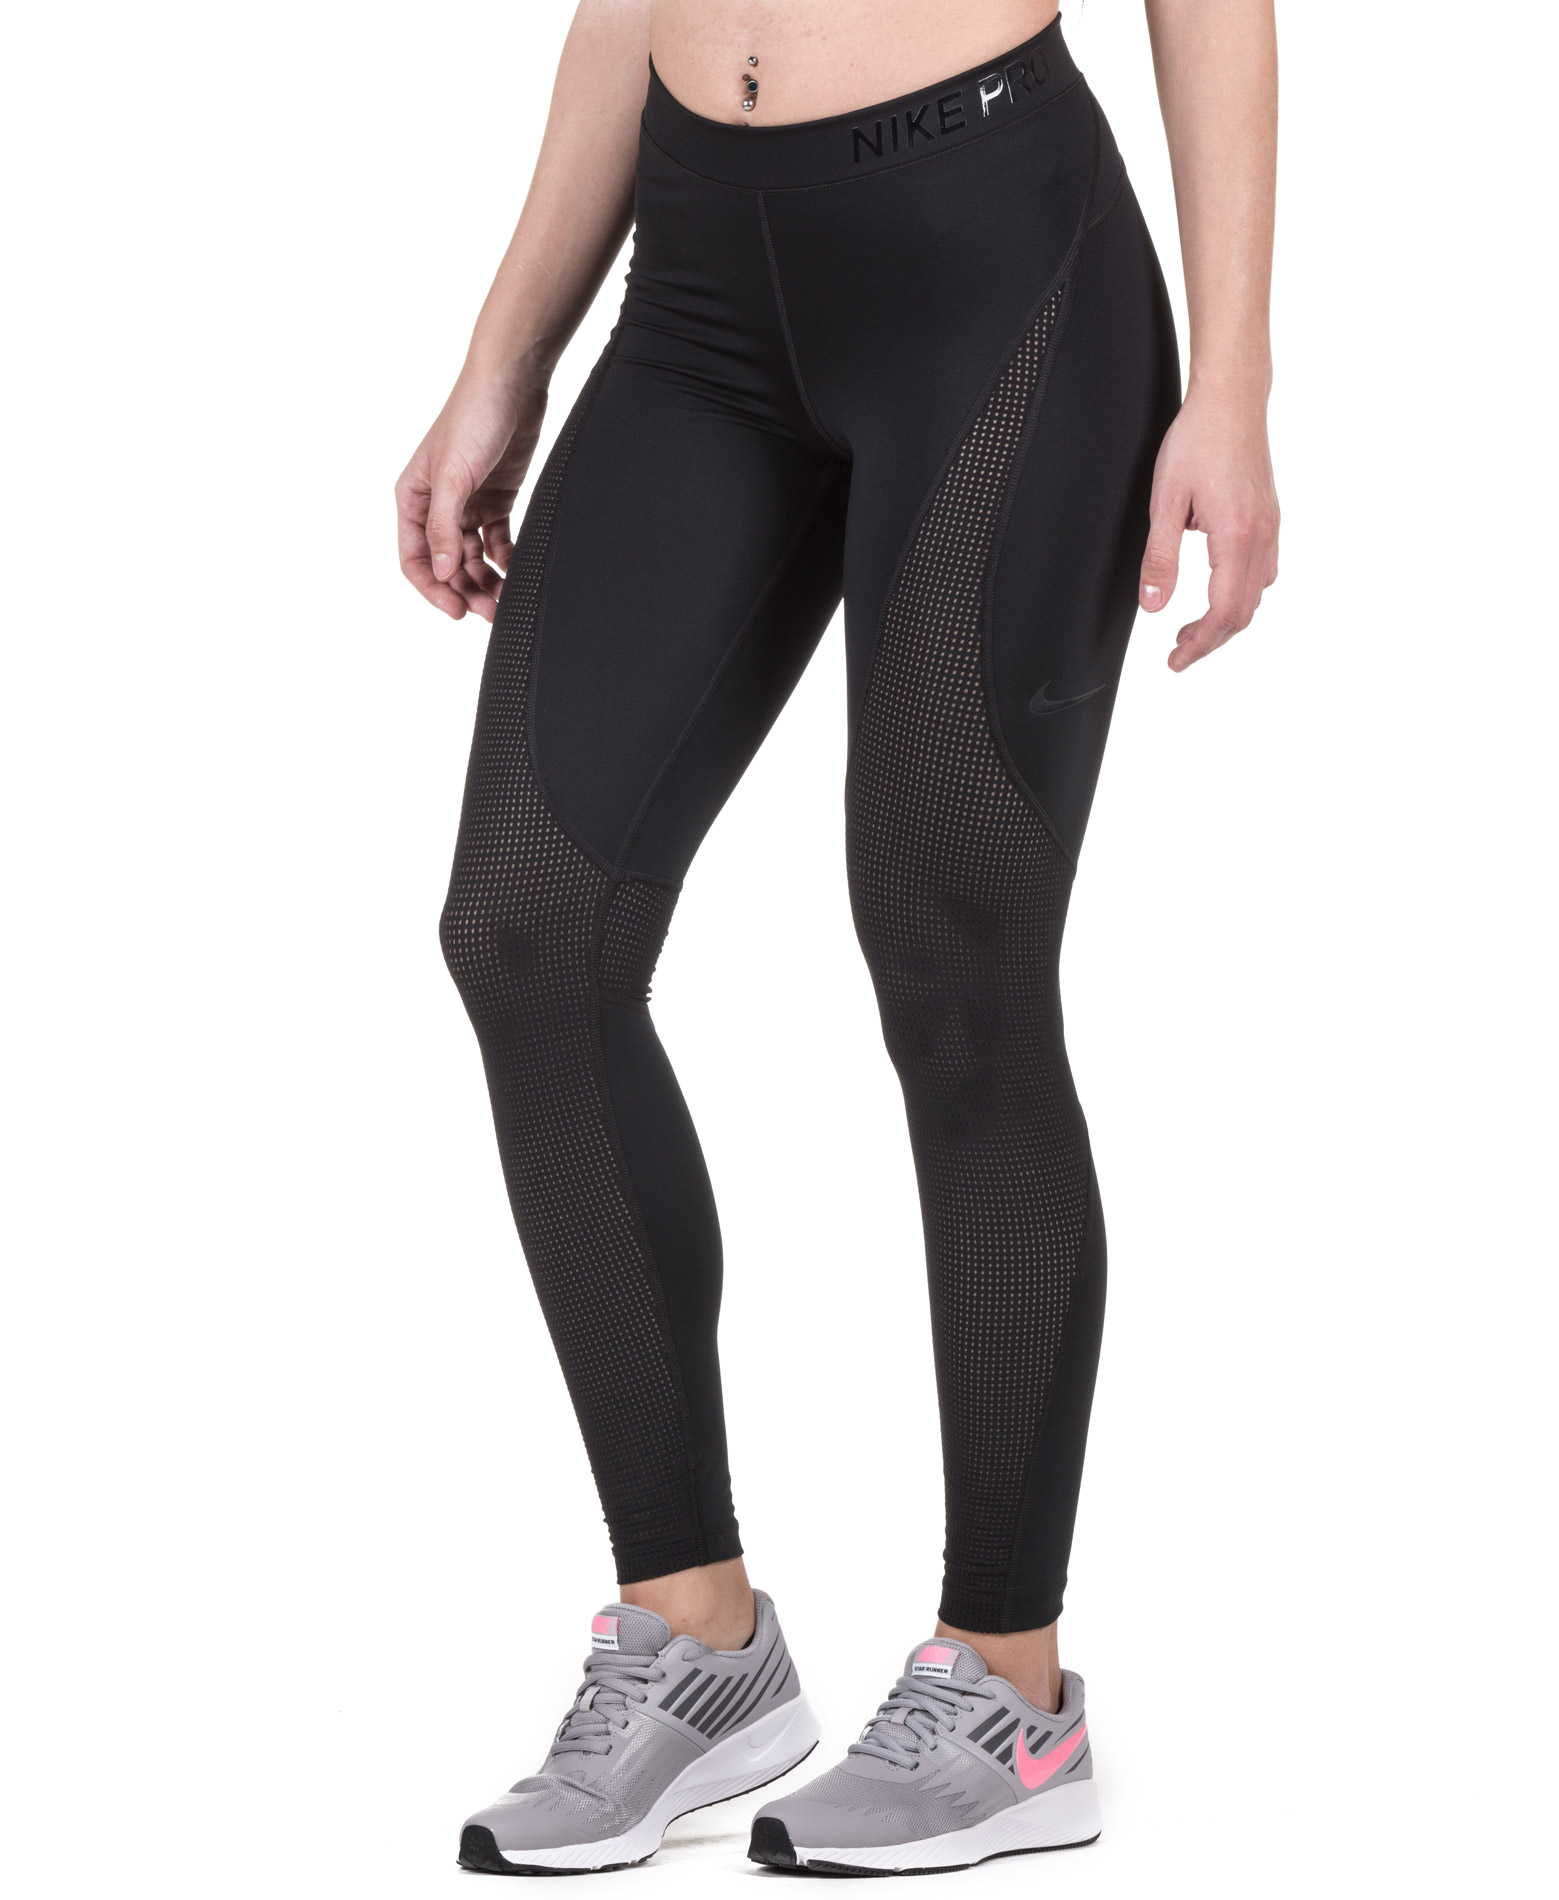 NIKE W NP HPRCL TIGHT 889645-010 Μαύρο